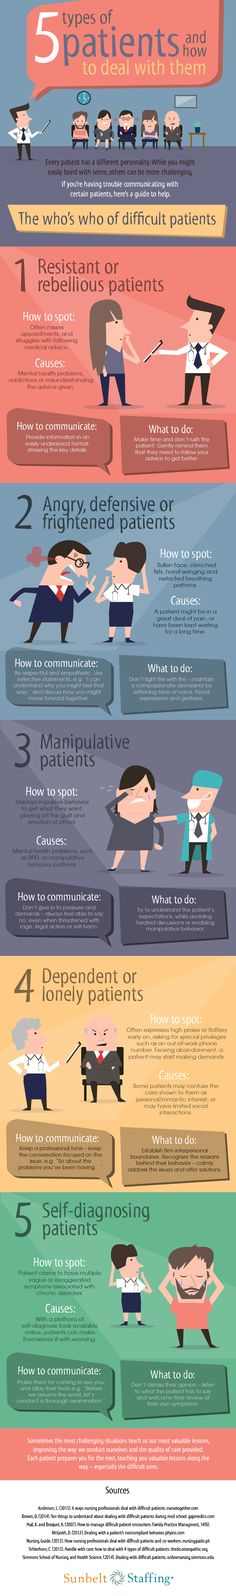 5 Types of Difficult Patients and How to Deal With Them #infographic #Healthcare #Patients